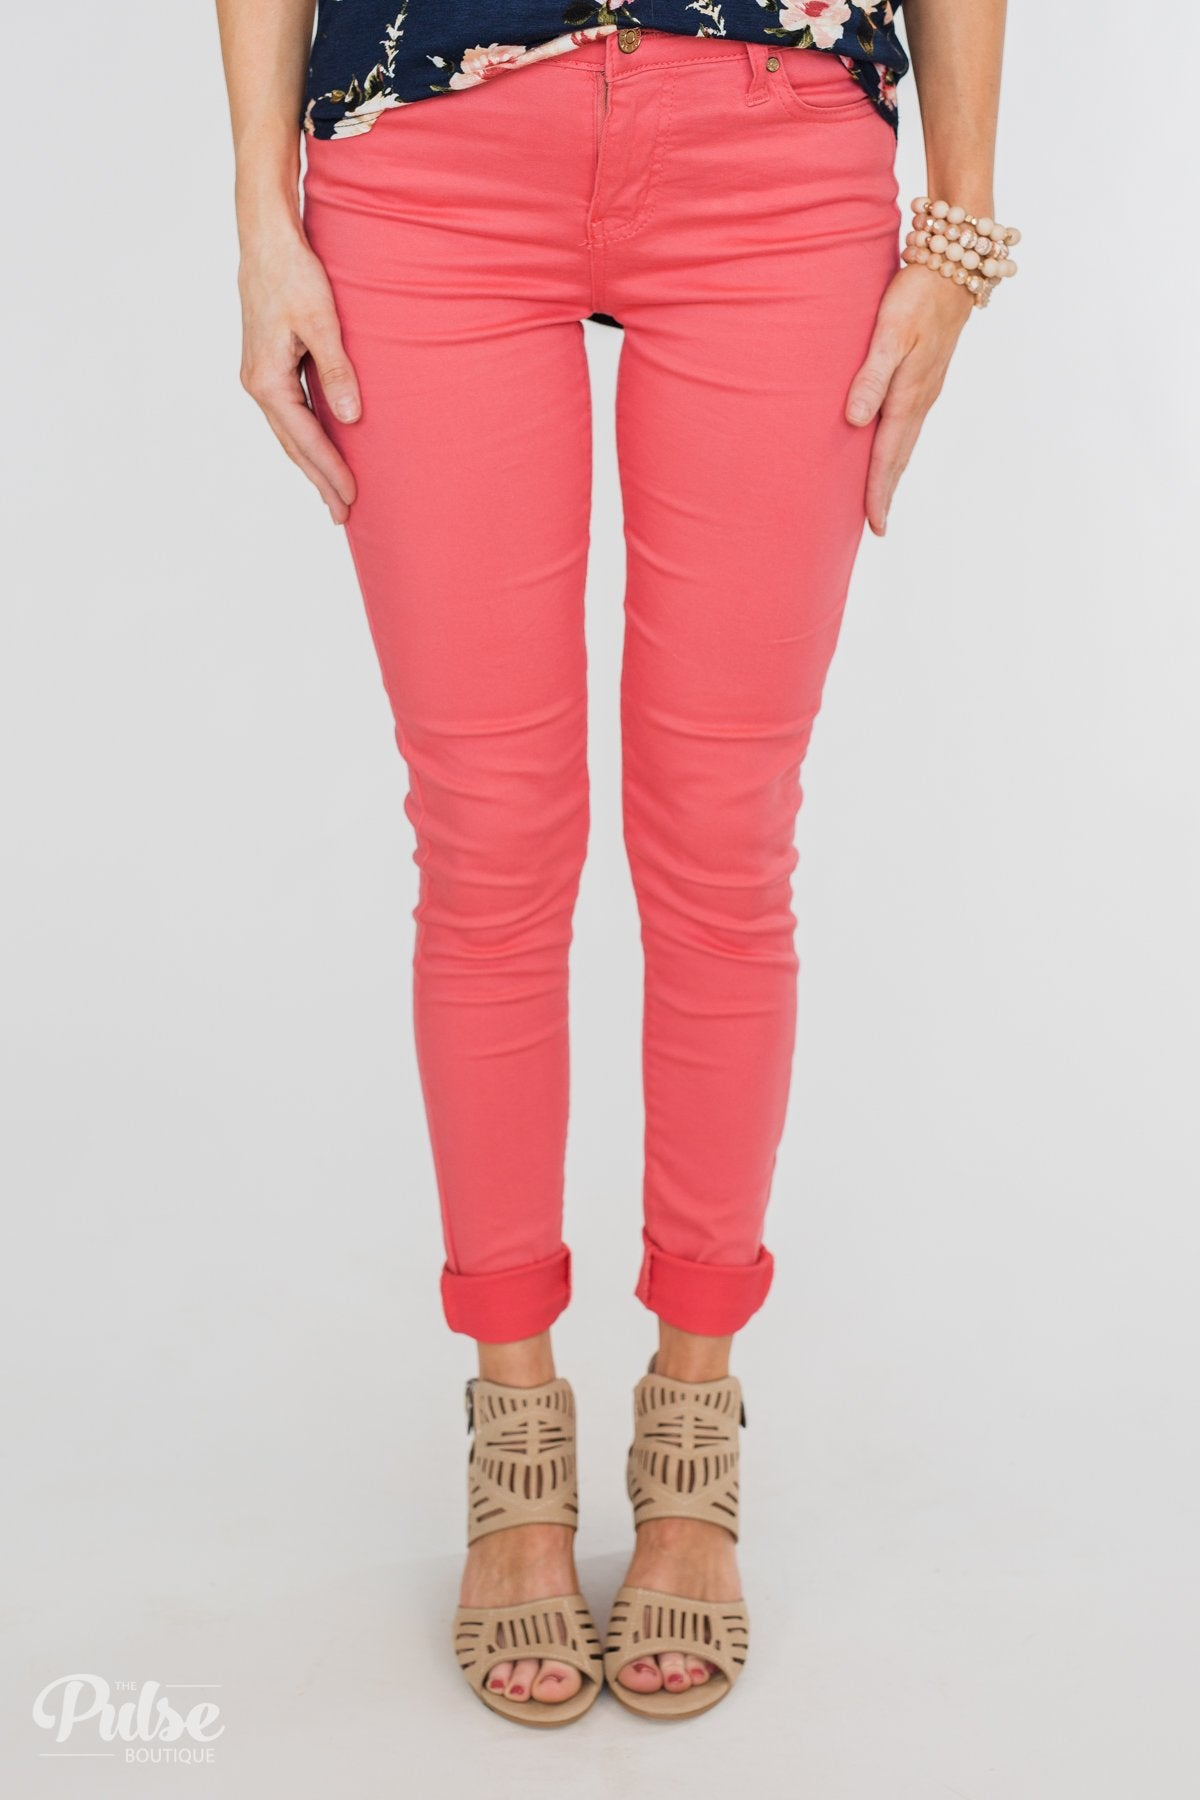 b37361fa95f Celebrity Pink Skinny Jeans- Lipstick – The Pulse Boutique